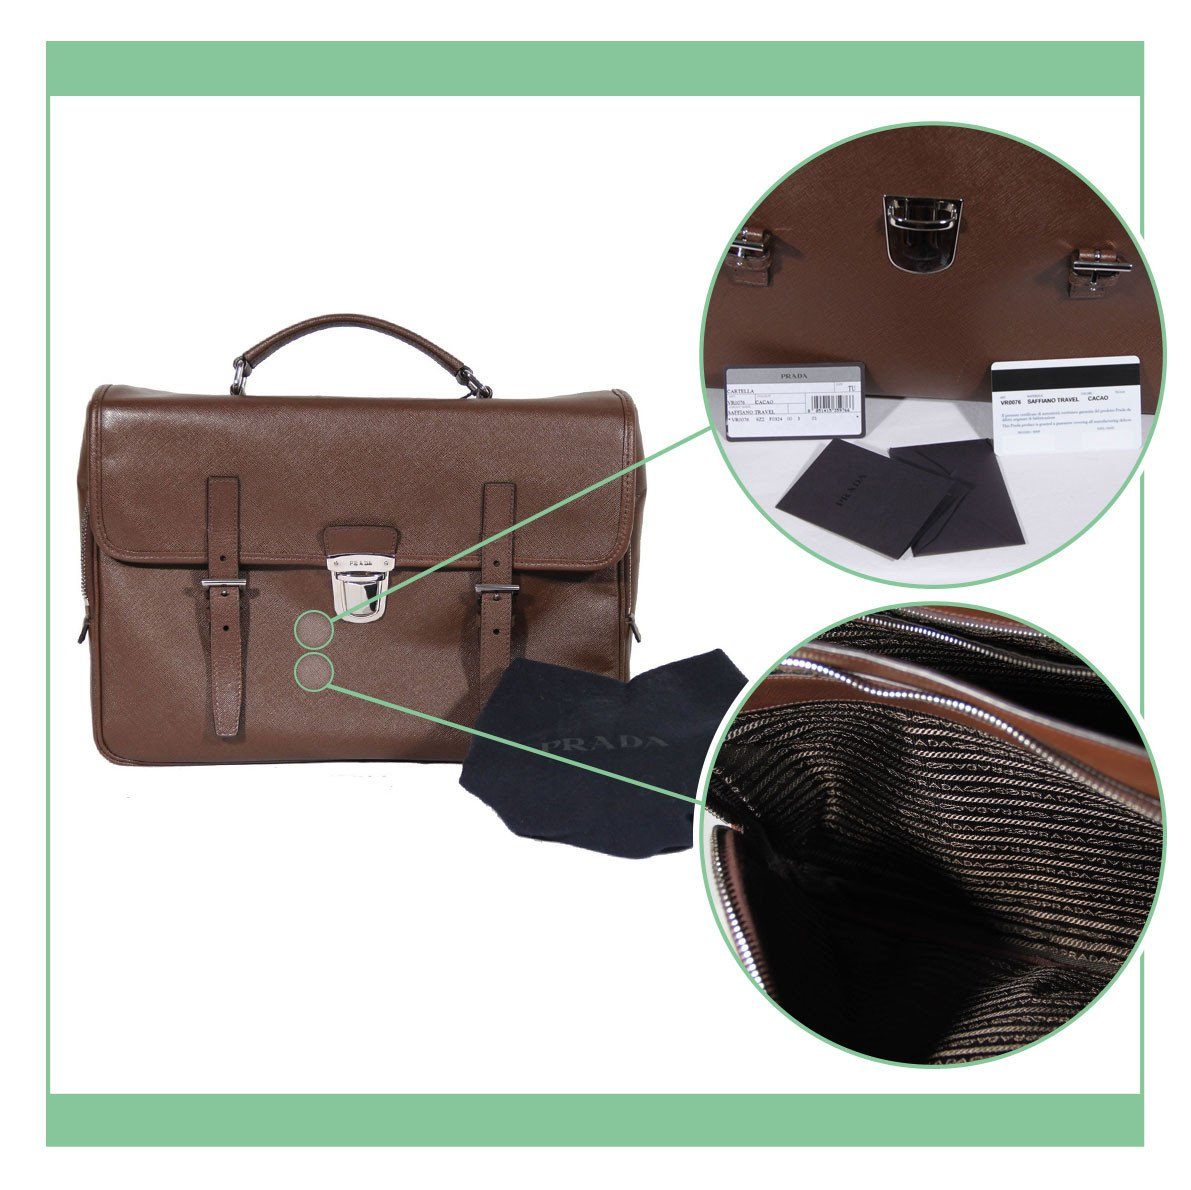 7ab52f153d244e ... Prada monogram woven throughout, one line right side up, the next  upside down. Some designs have smooth leather or satin lining with no  pattern, ...